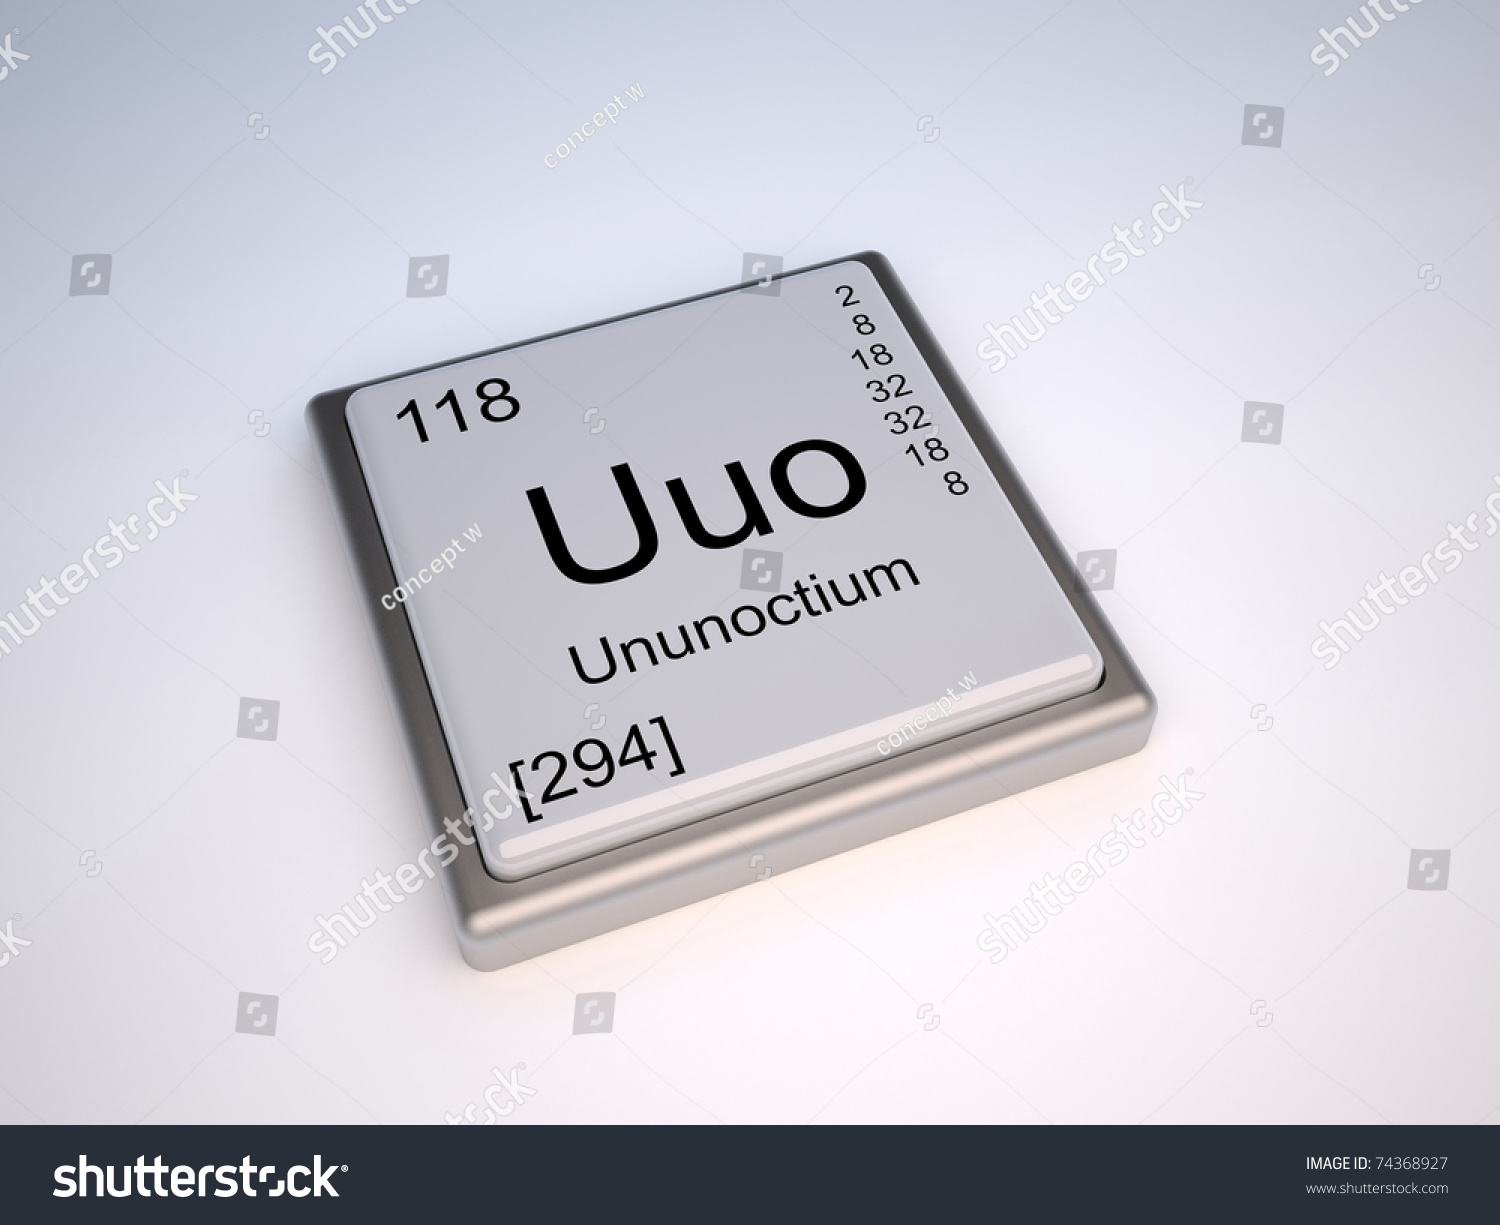 Ununoctium chemical element periodic table symbol stock illustration ununoctium chemical element of the periodic table with symbol uuo urtaz Images